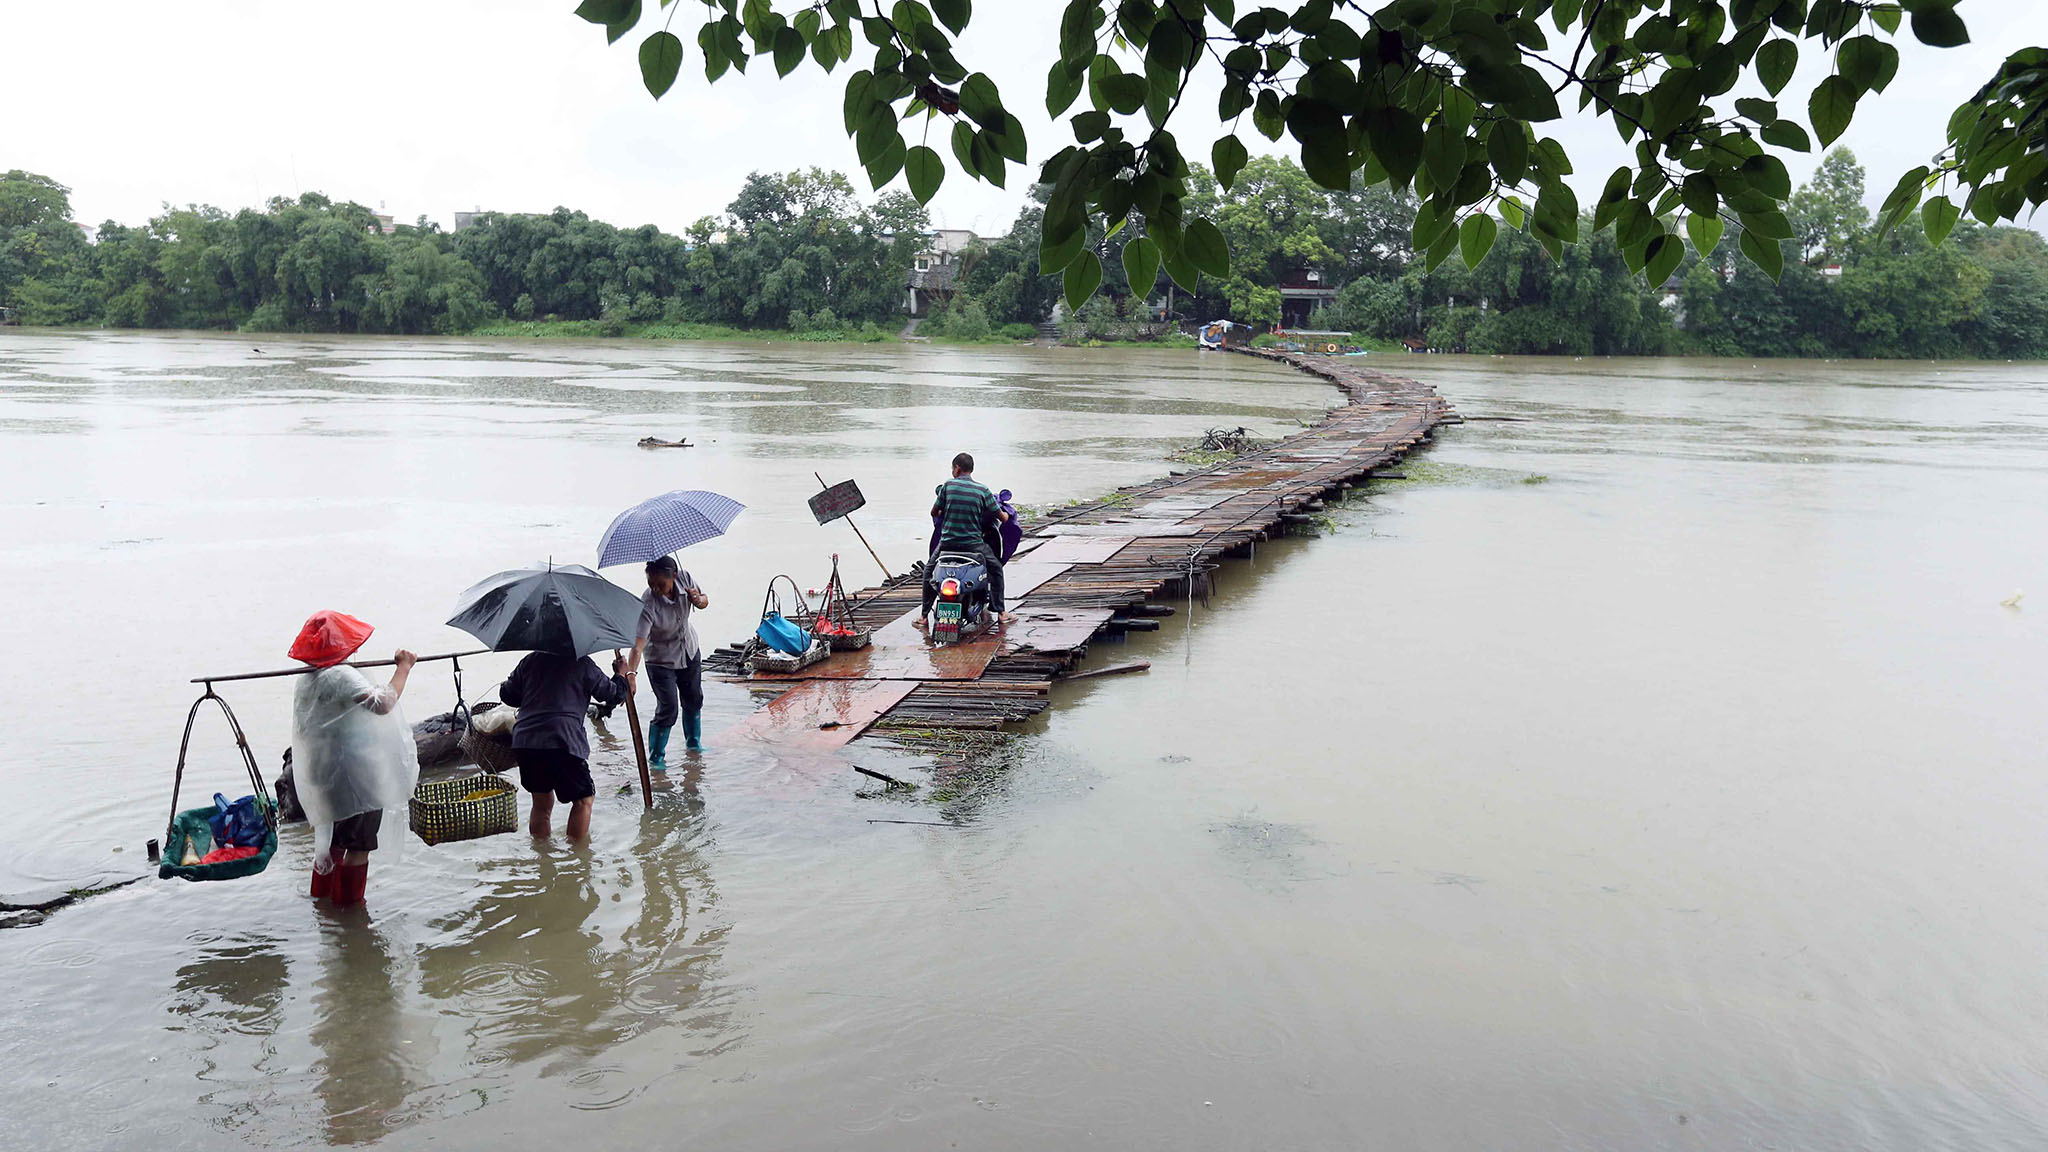 People walk along a wooden bridge submerged by floodwater in Guilin